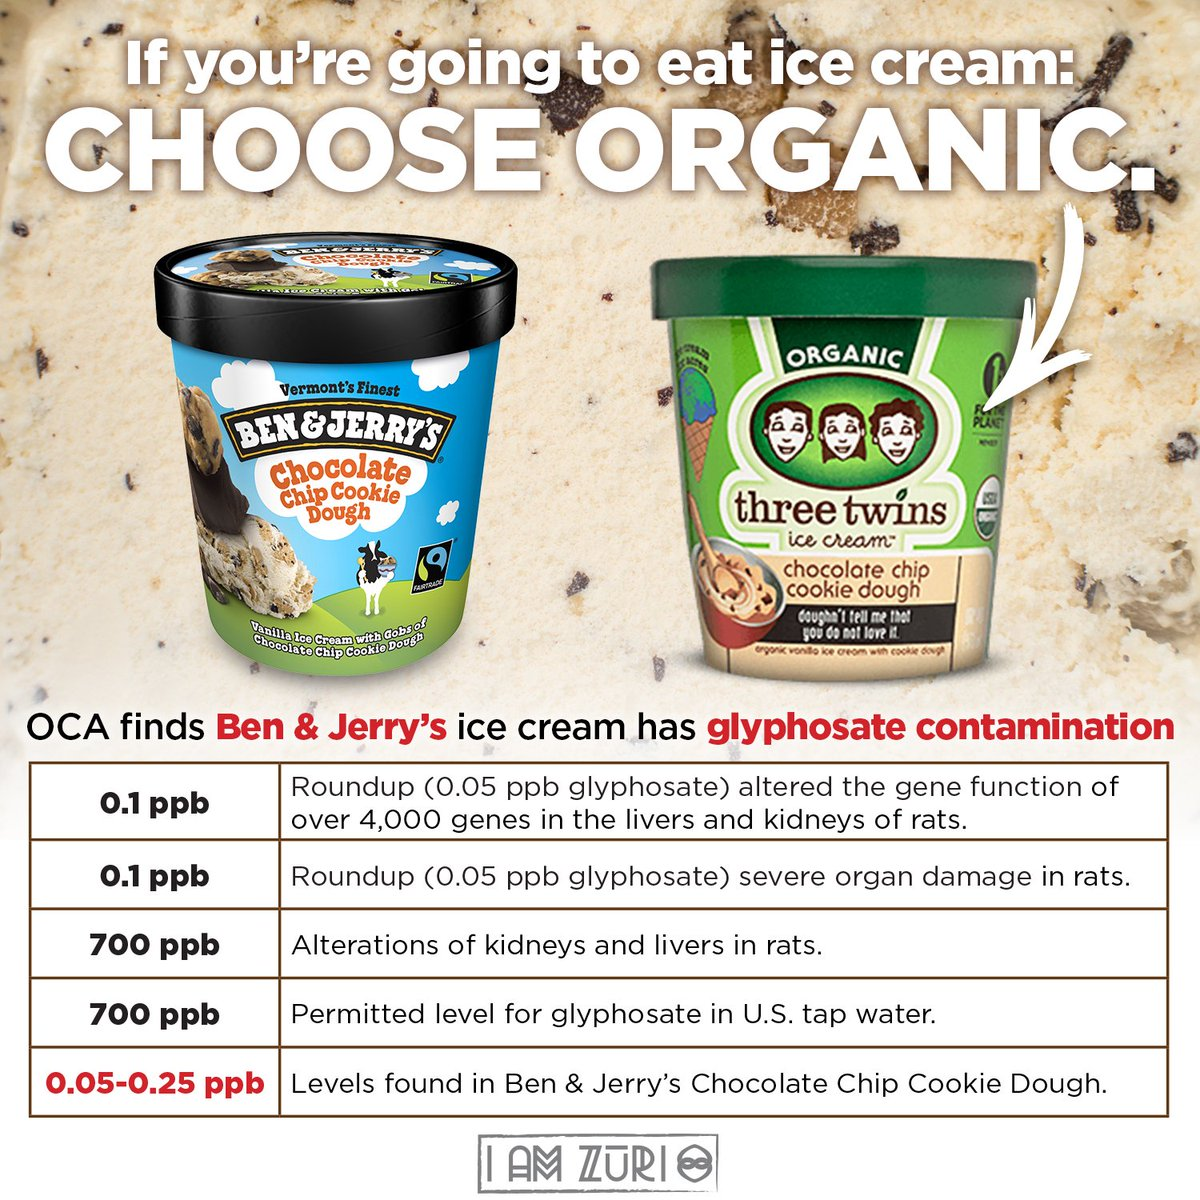 Are you eating roundup ready ice cream? https://t.co/j1YucFxMYJ https://t.co/aRKgC6daVV